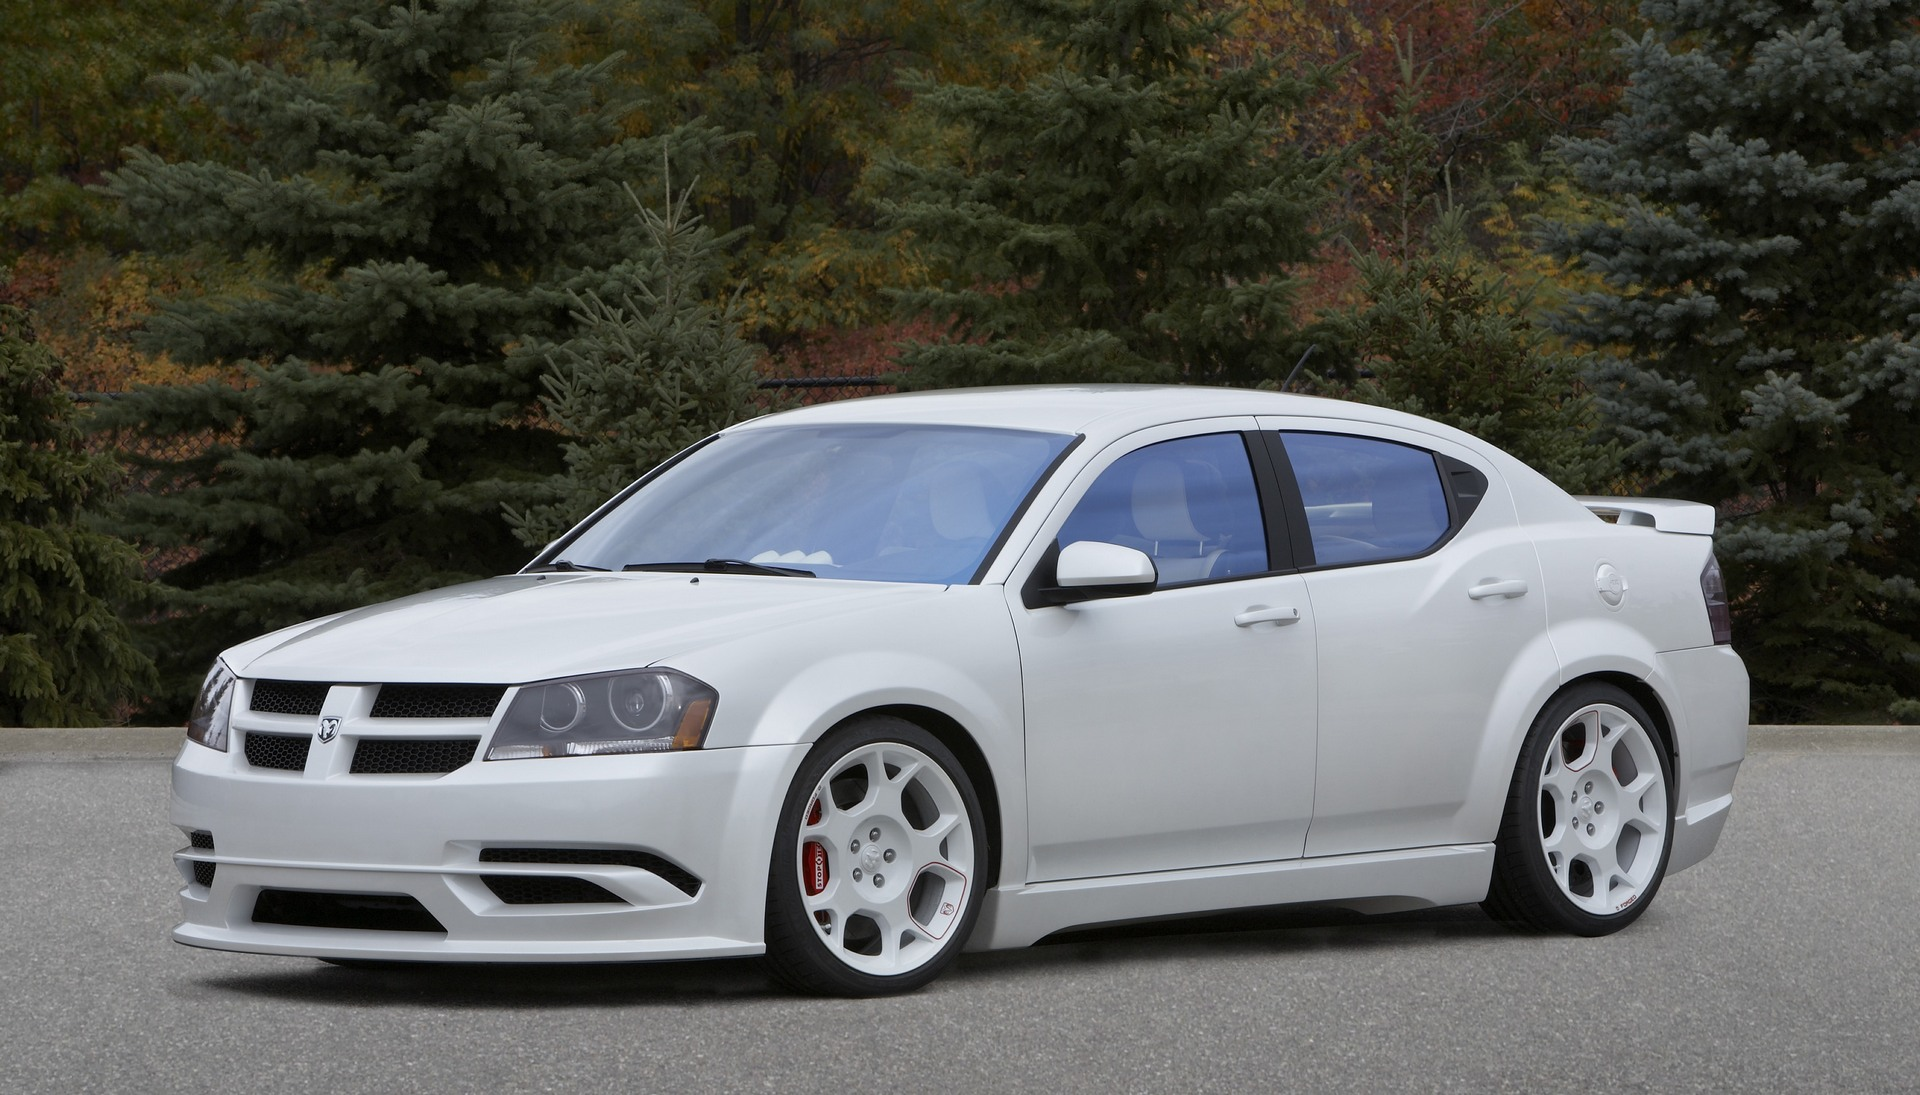 2008 Dodge Avenger Stormtrooper Concept News and Information, Research, and History ...